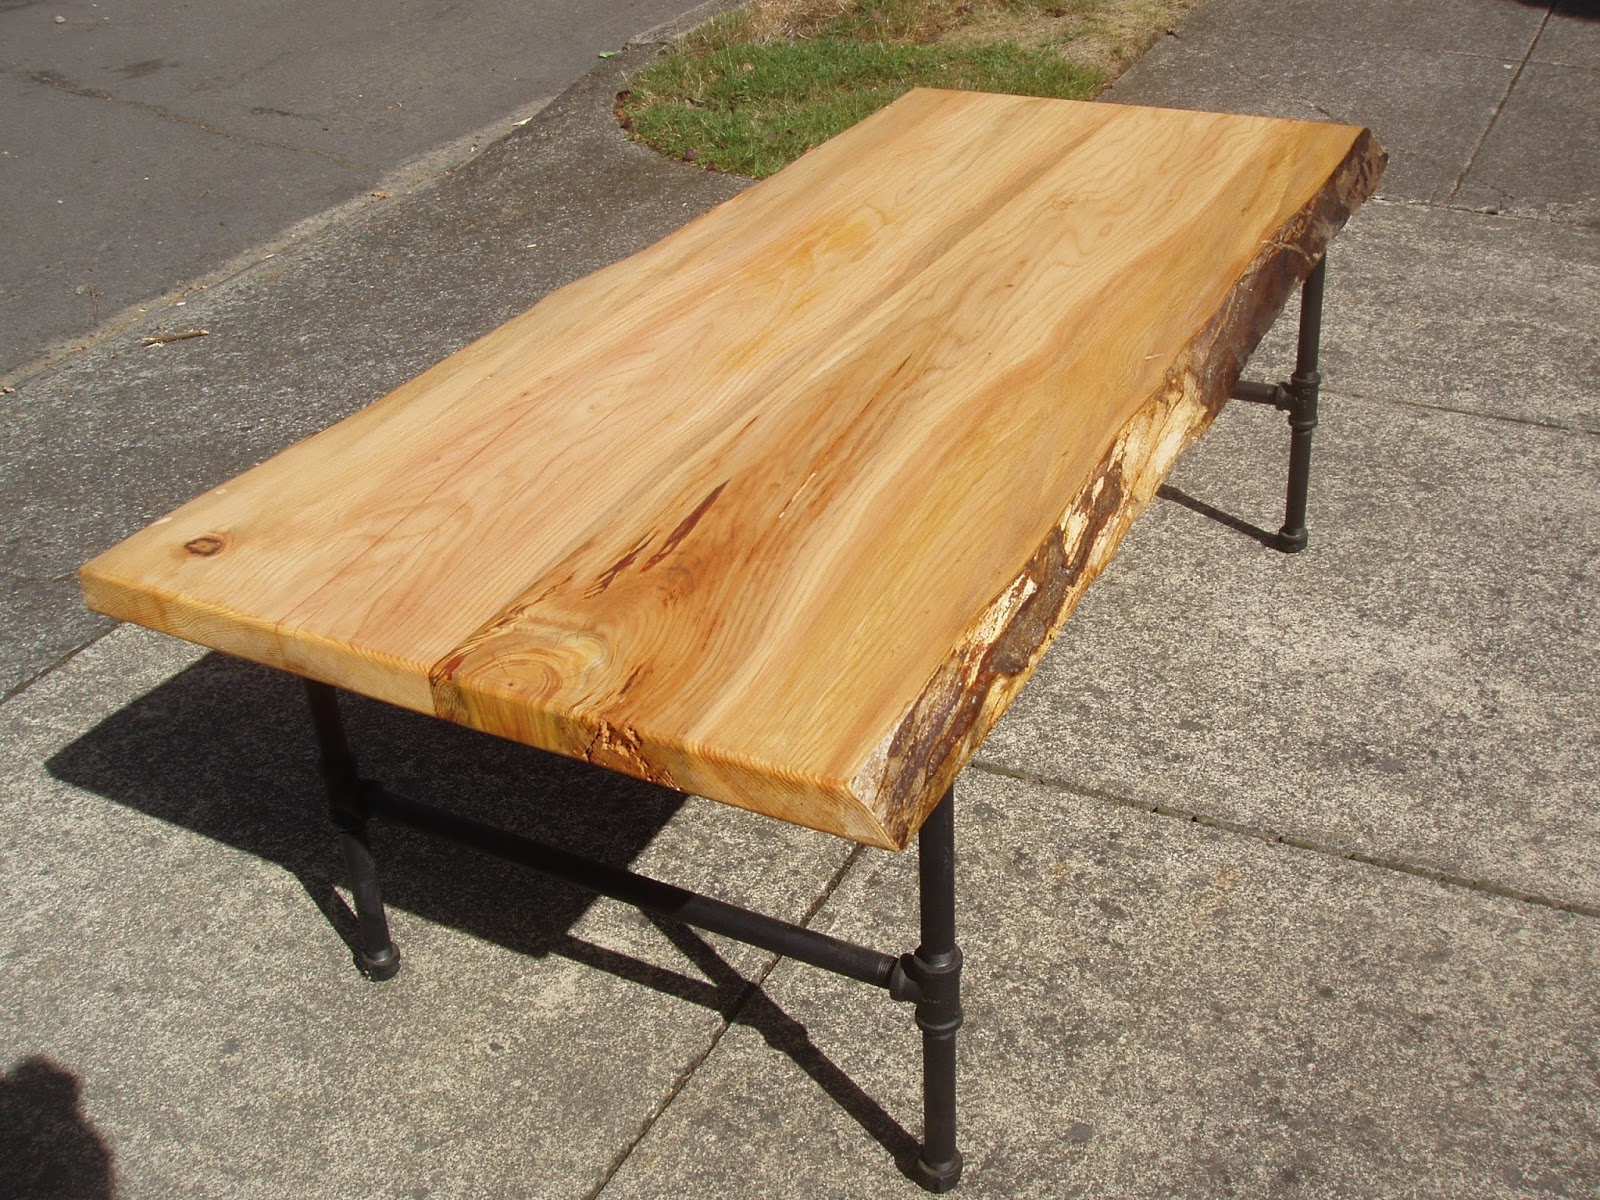 Western red cedar table top western red cedar live edge table top - A Simple Yet Elegant Piece Double Live Edge Incense Cedar Top 48x23 With Indrustrial Style Steel Pipe Legging For Details And Purchasing Visit My Etsy